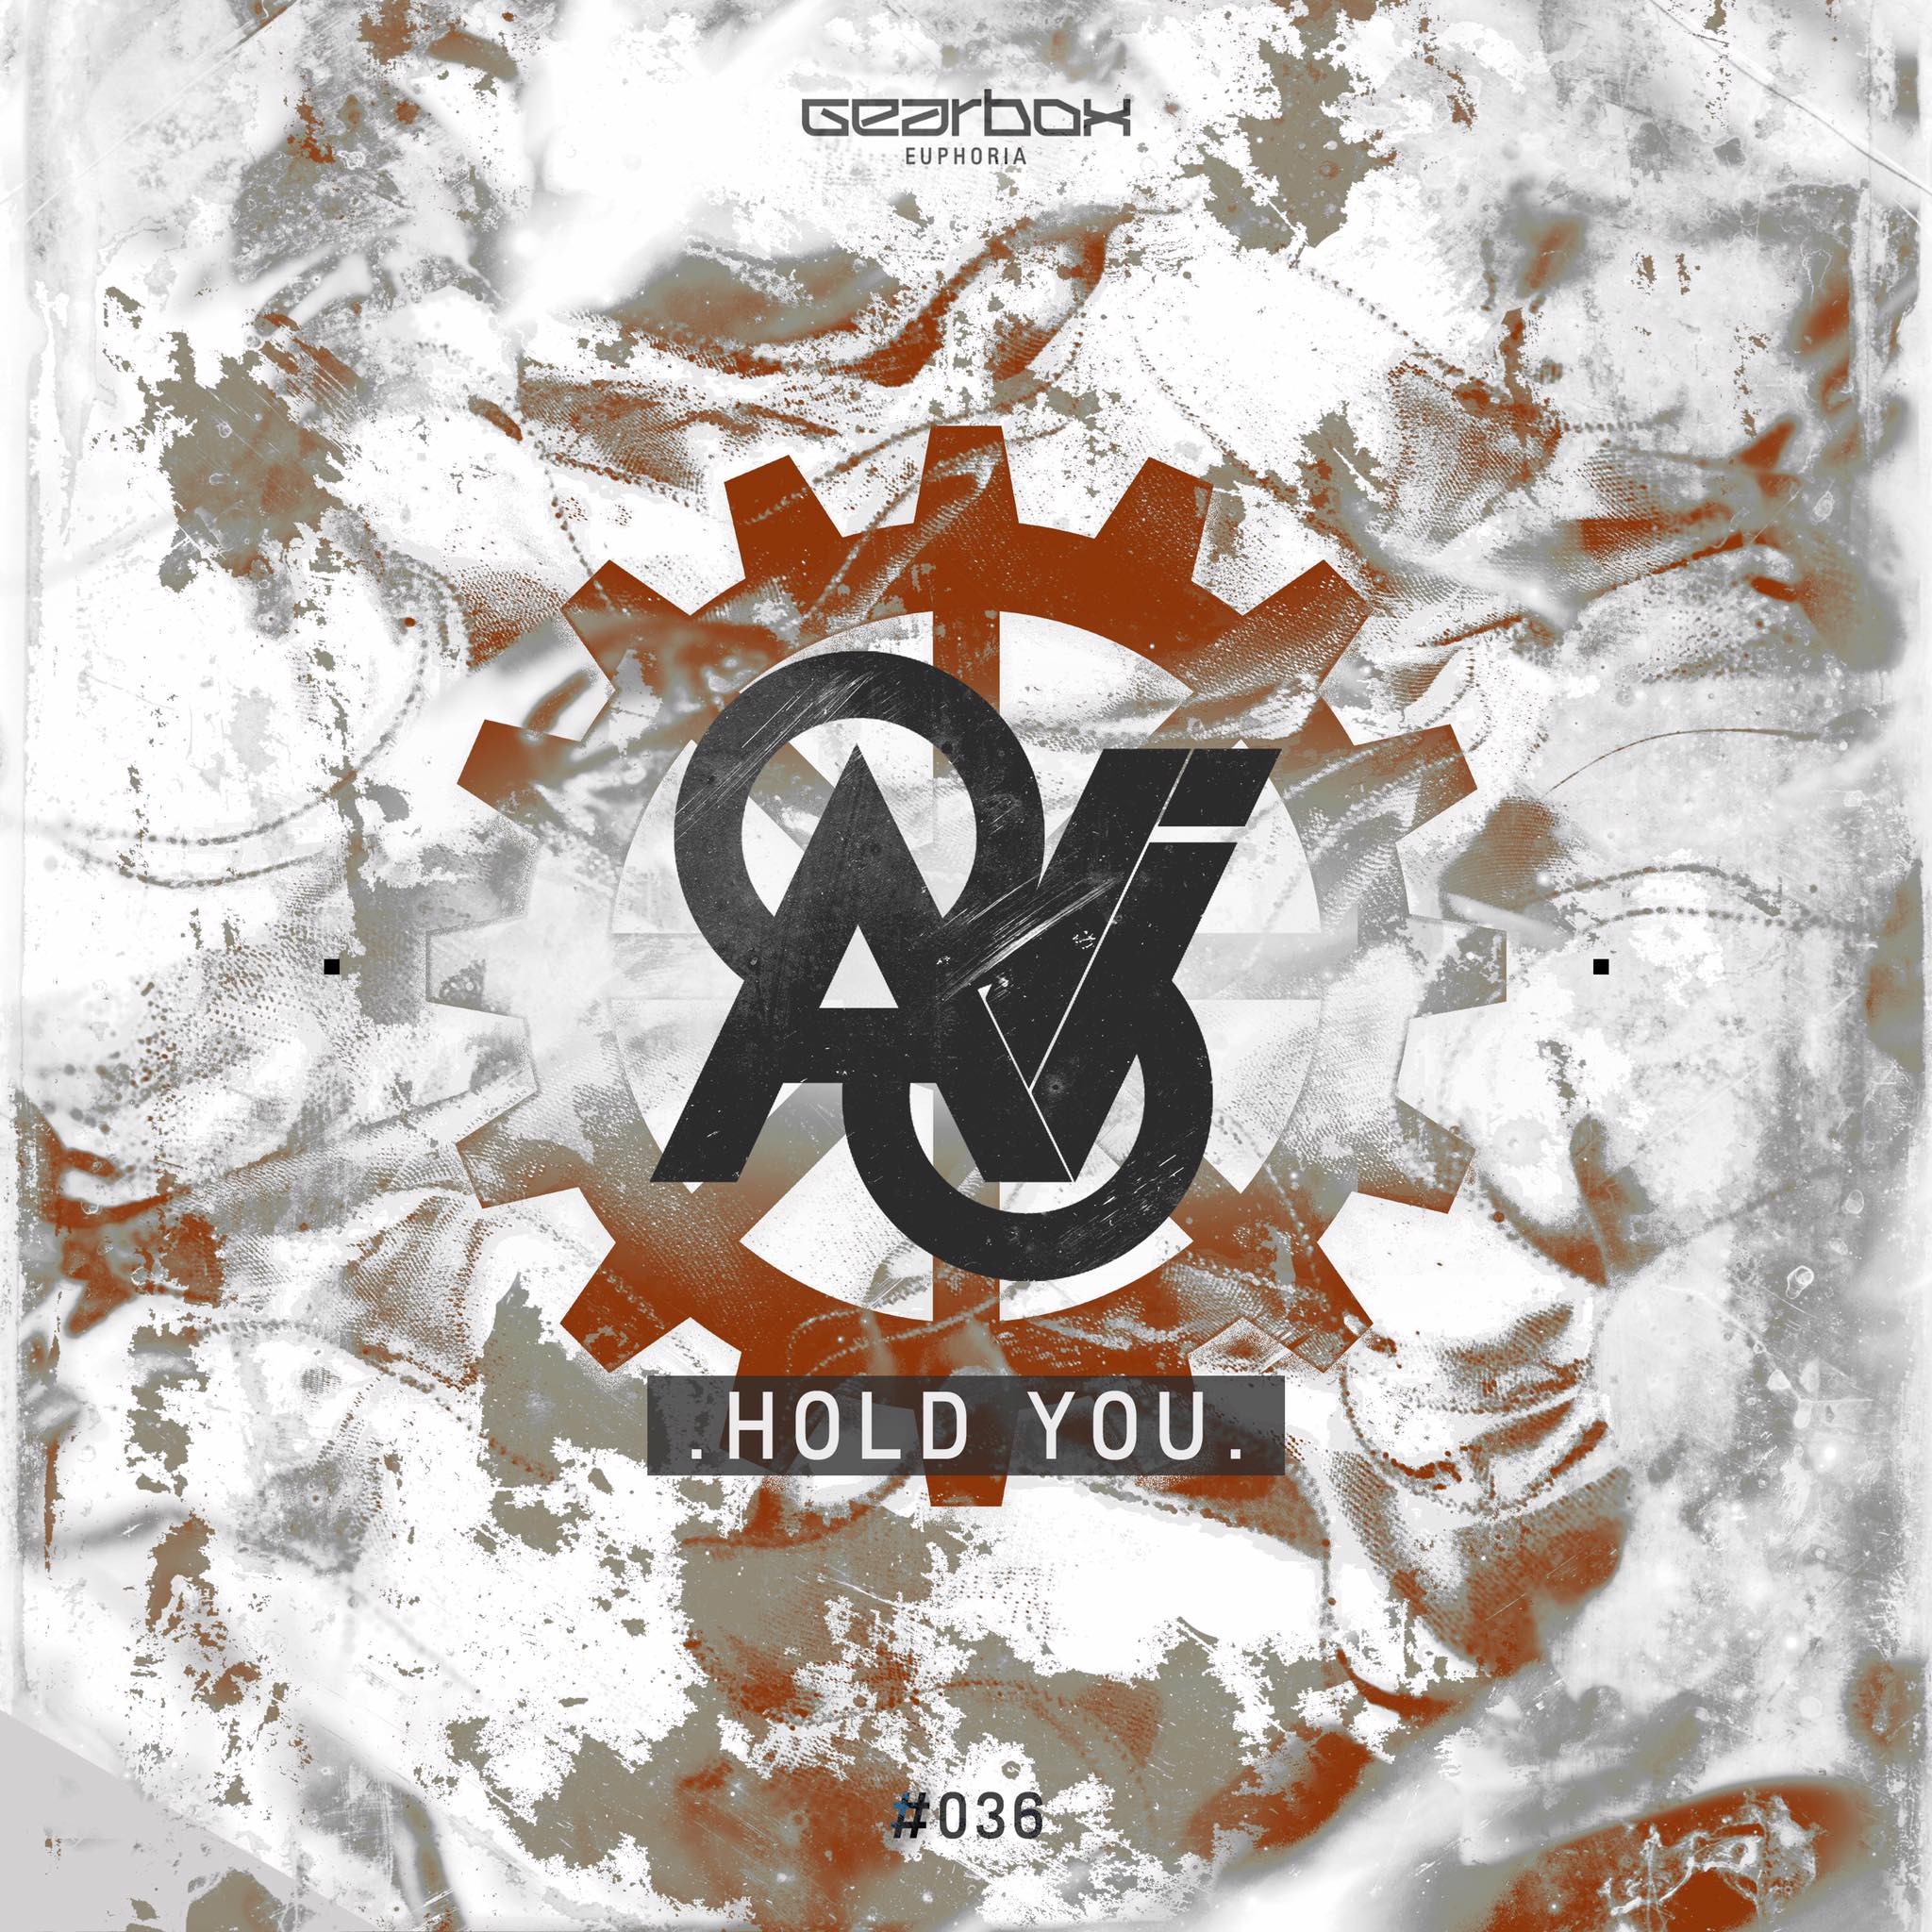 Avi8 - Hold You [GEARBOX EUPHORIA] GBE036